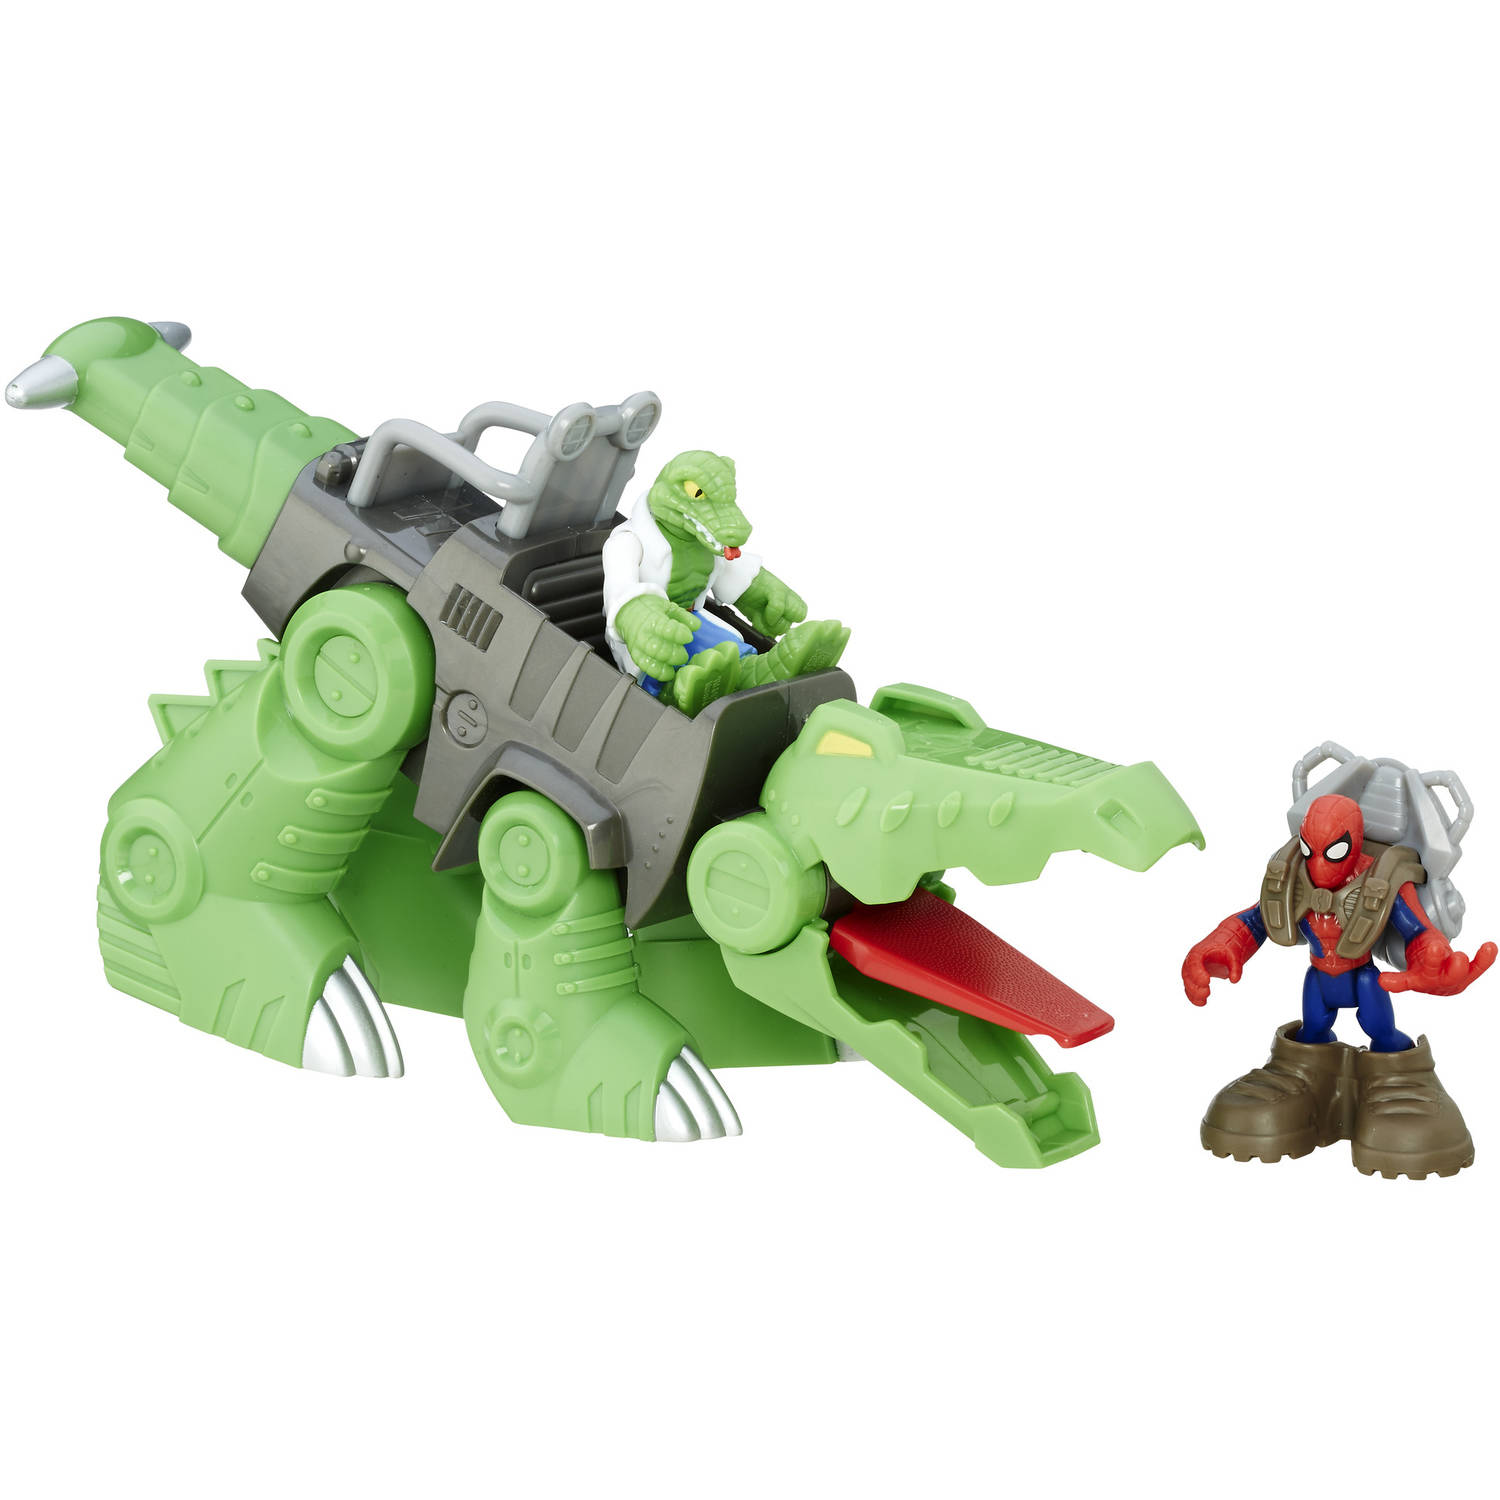 Playskool Heroes Marvel Super Hero Adventures Spider-Man & Gator-Bot by Hasbro